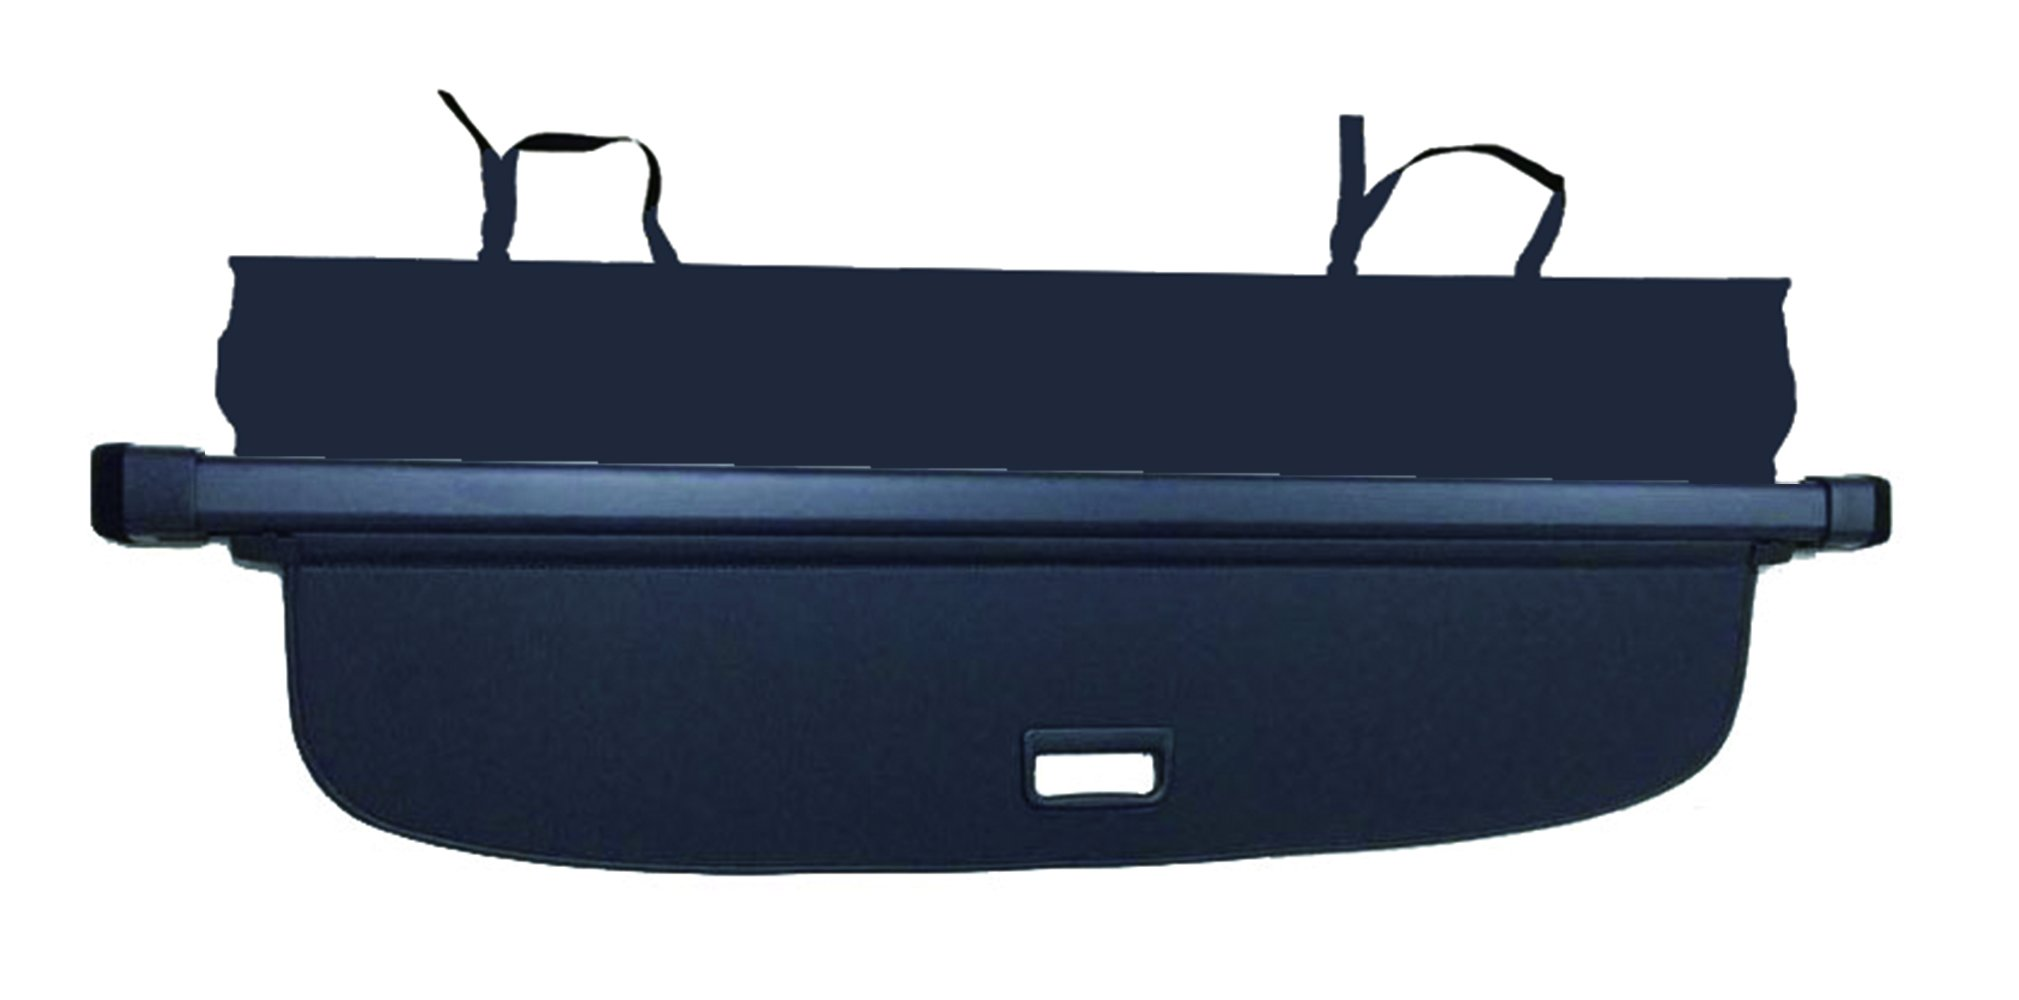 Cargo Cover for VW Volkswagen Tiguan 2018-2019 Black Trunk Shielding Shade by Kaungka(Upgraded version:There is no gap between the back seats and the cover (Black)